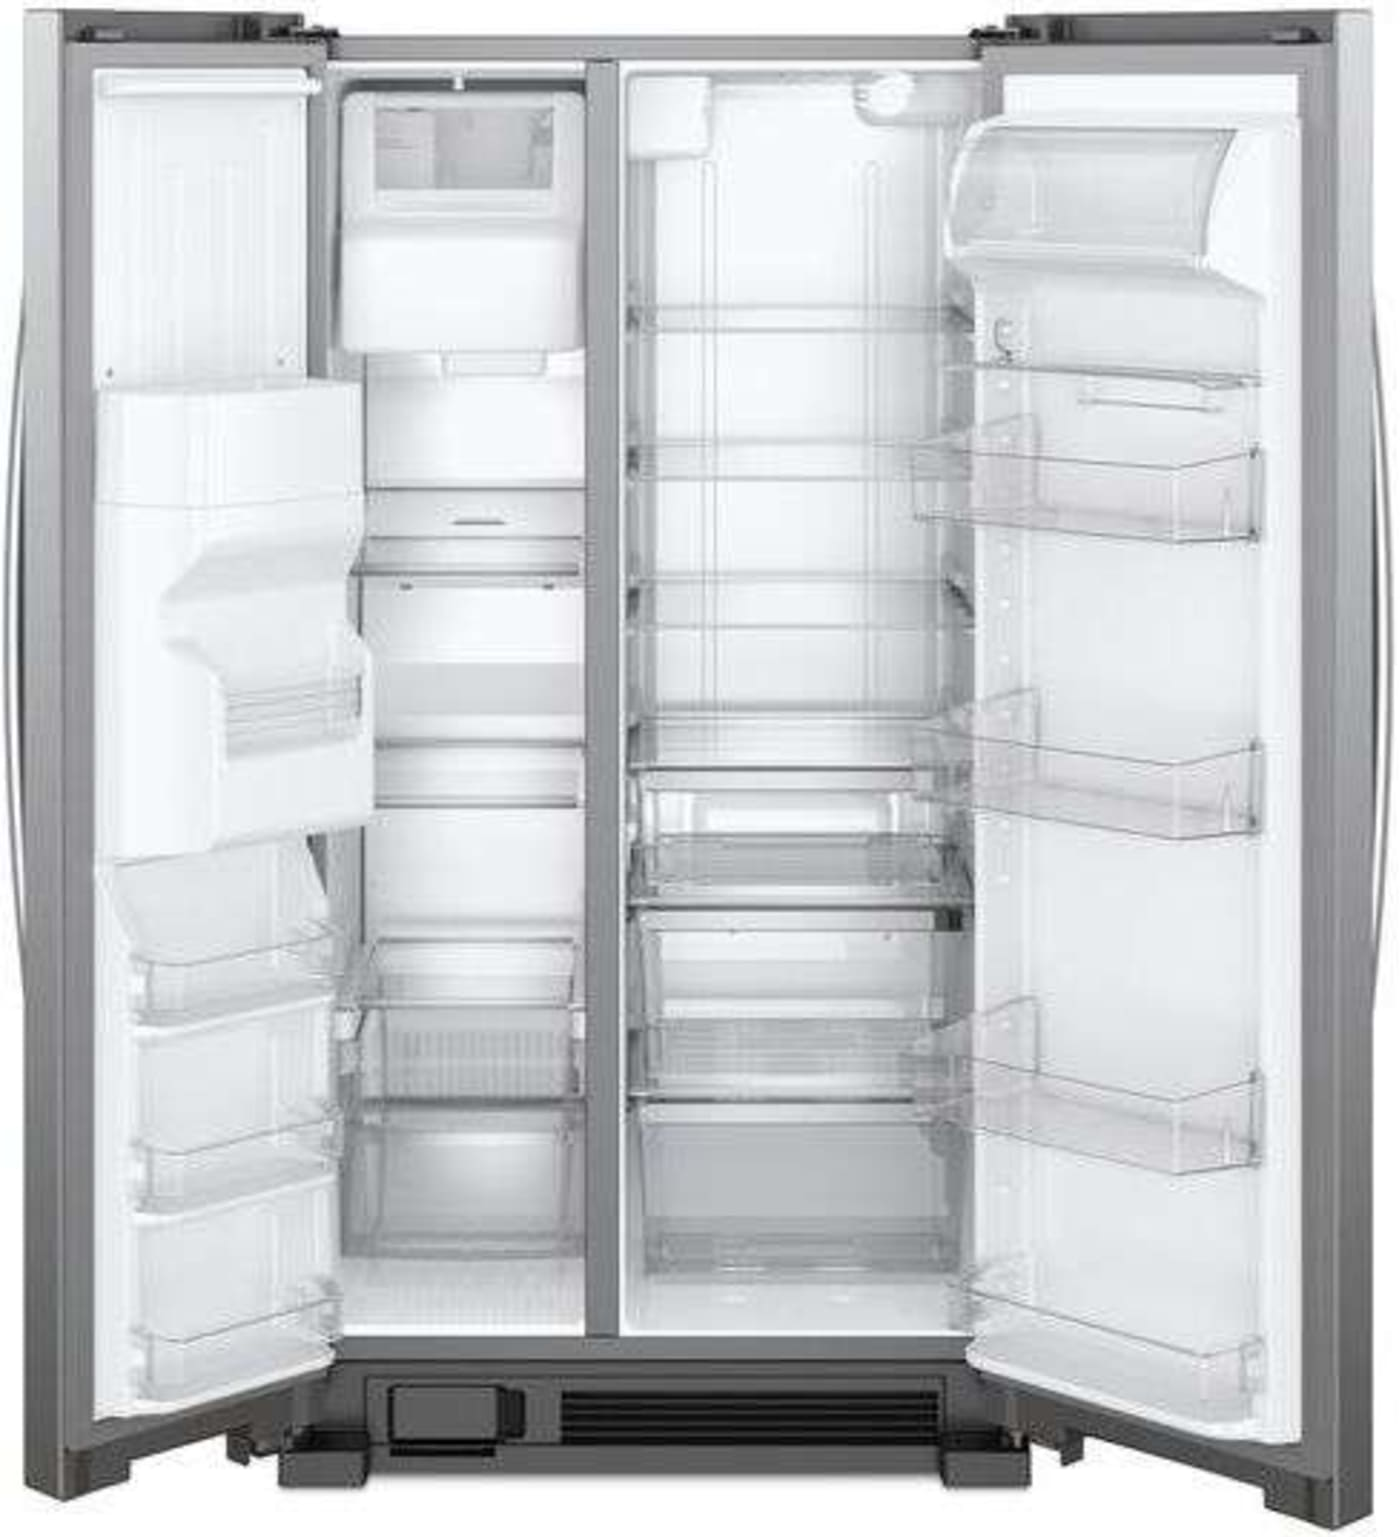 Wrs325sdhz By Whirlpool Side By Side Refrigerators